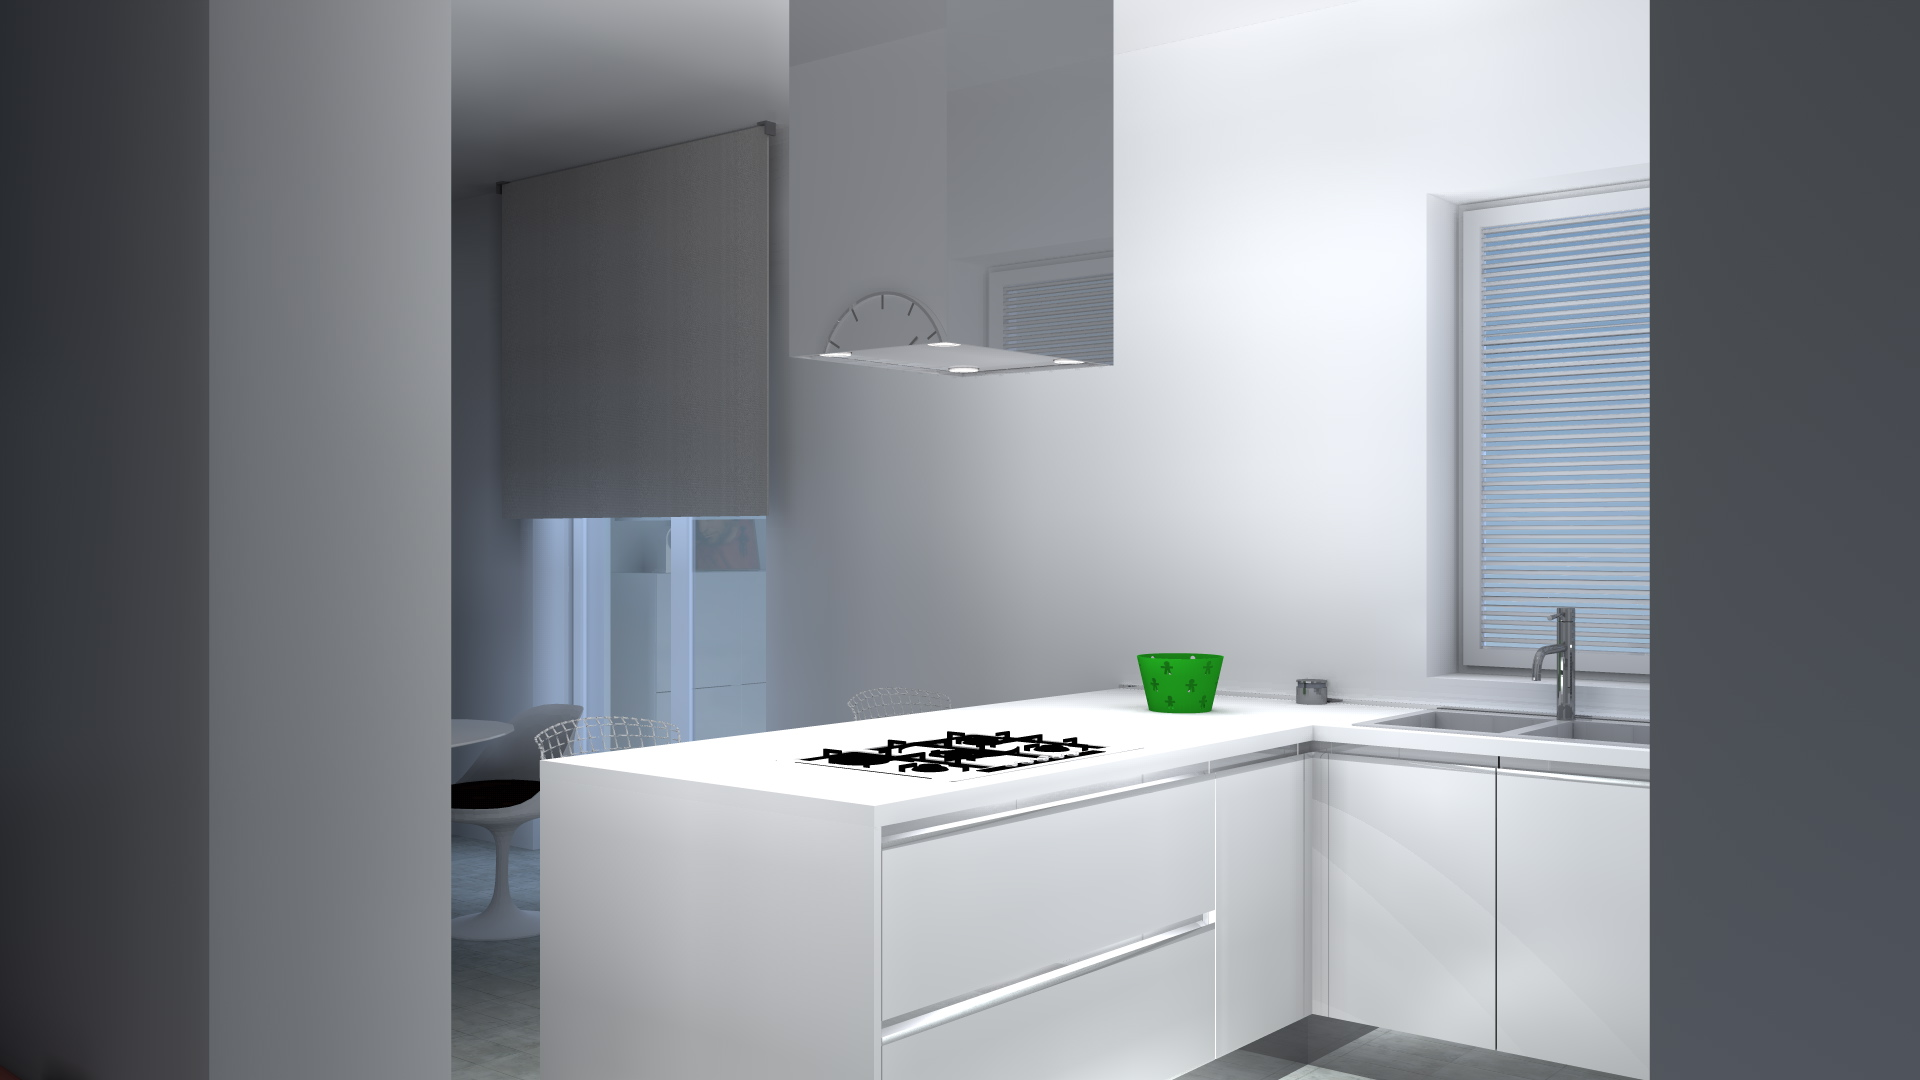 Awesome altezza piastrelle cucina images embercreative - Altezza piastrelle bagno ...